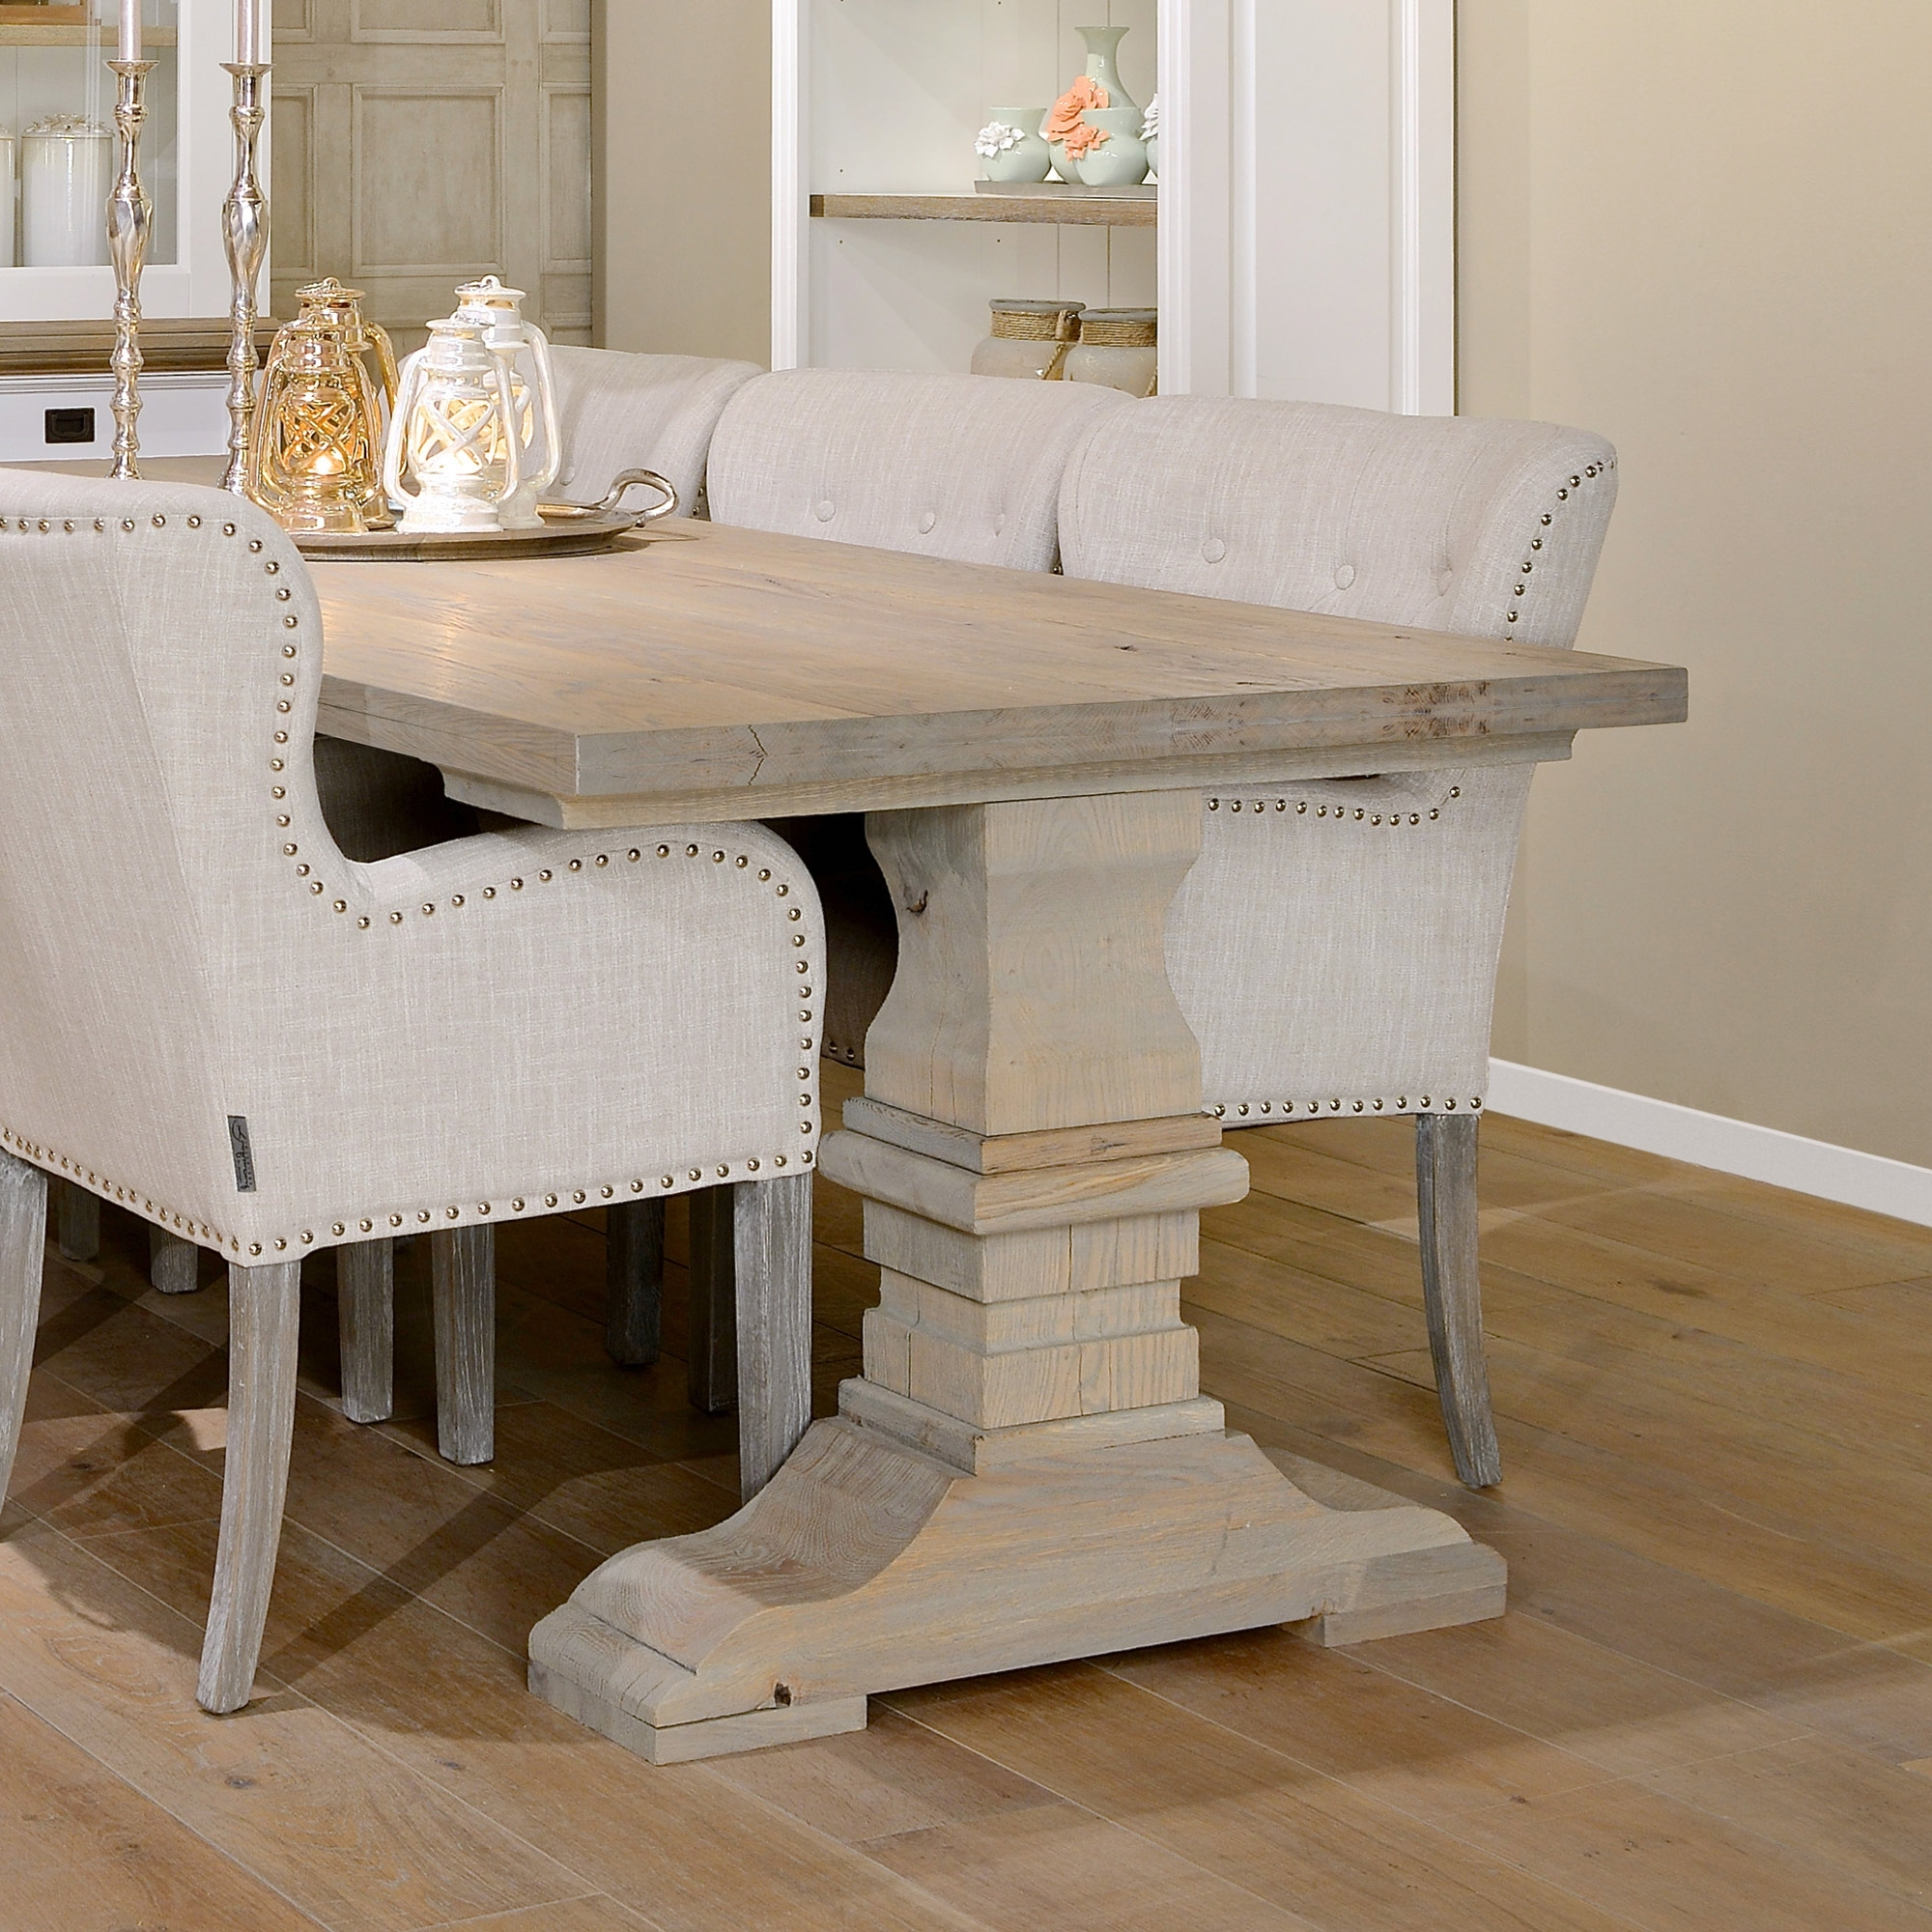 Newest Castle Oak Dining Table In Oak Dining Furniture (Gallery 7 of 25)